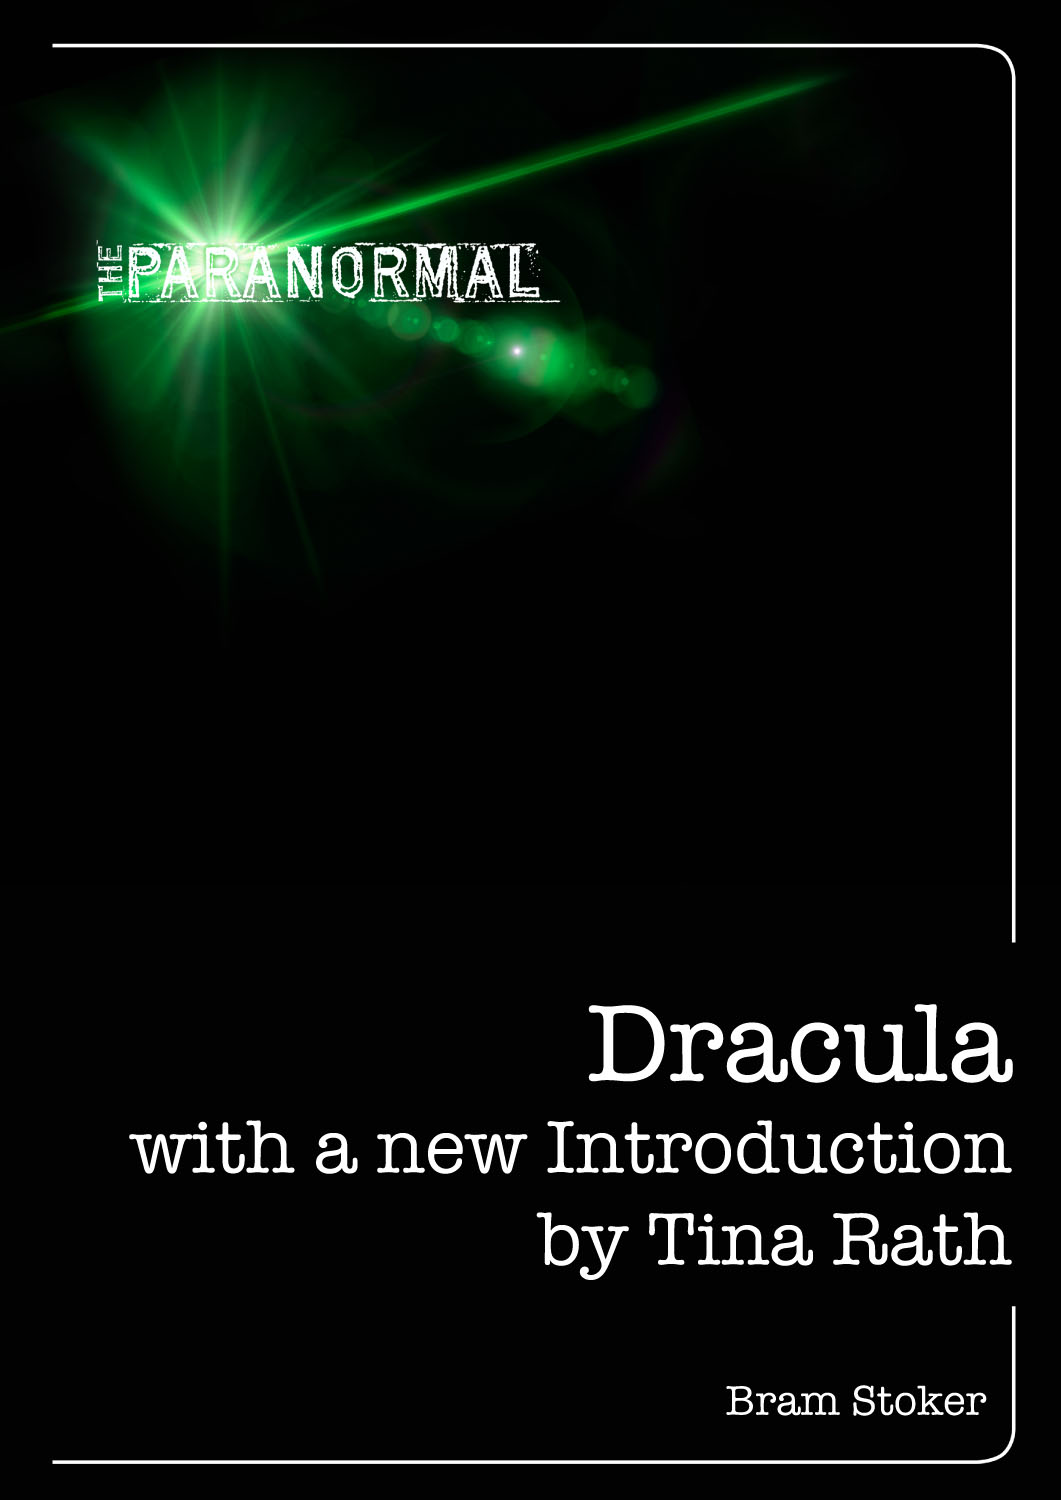 Dracula with an essential guide to the undead